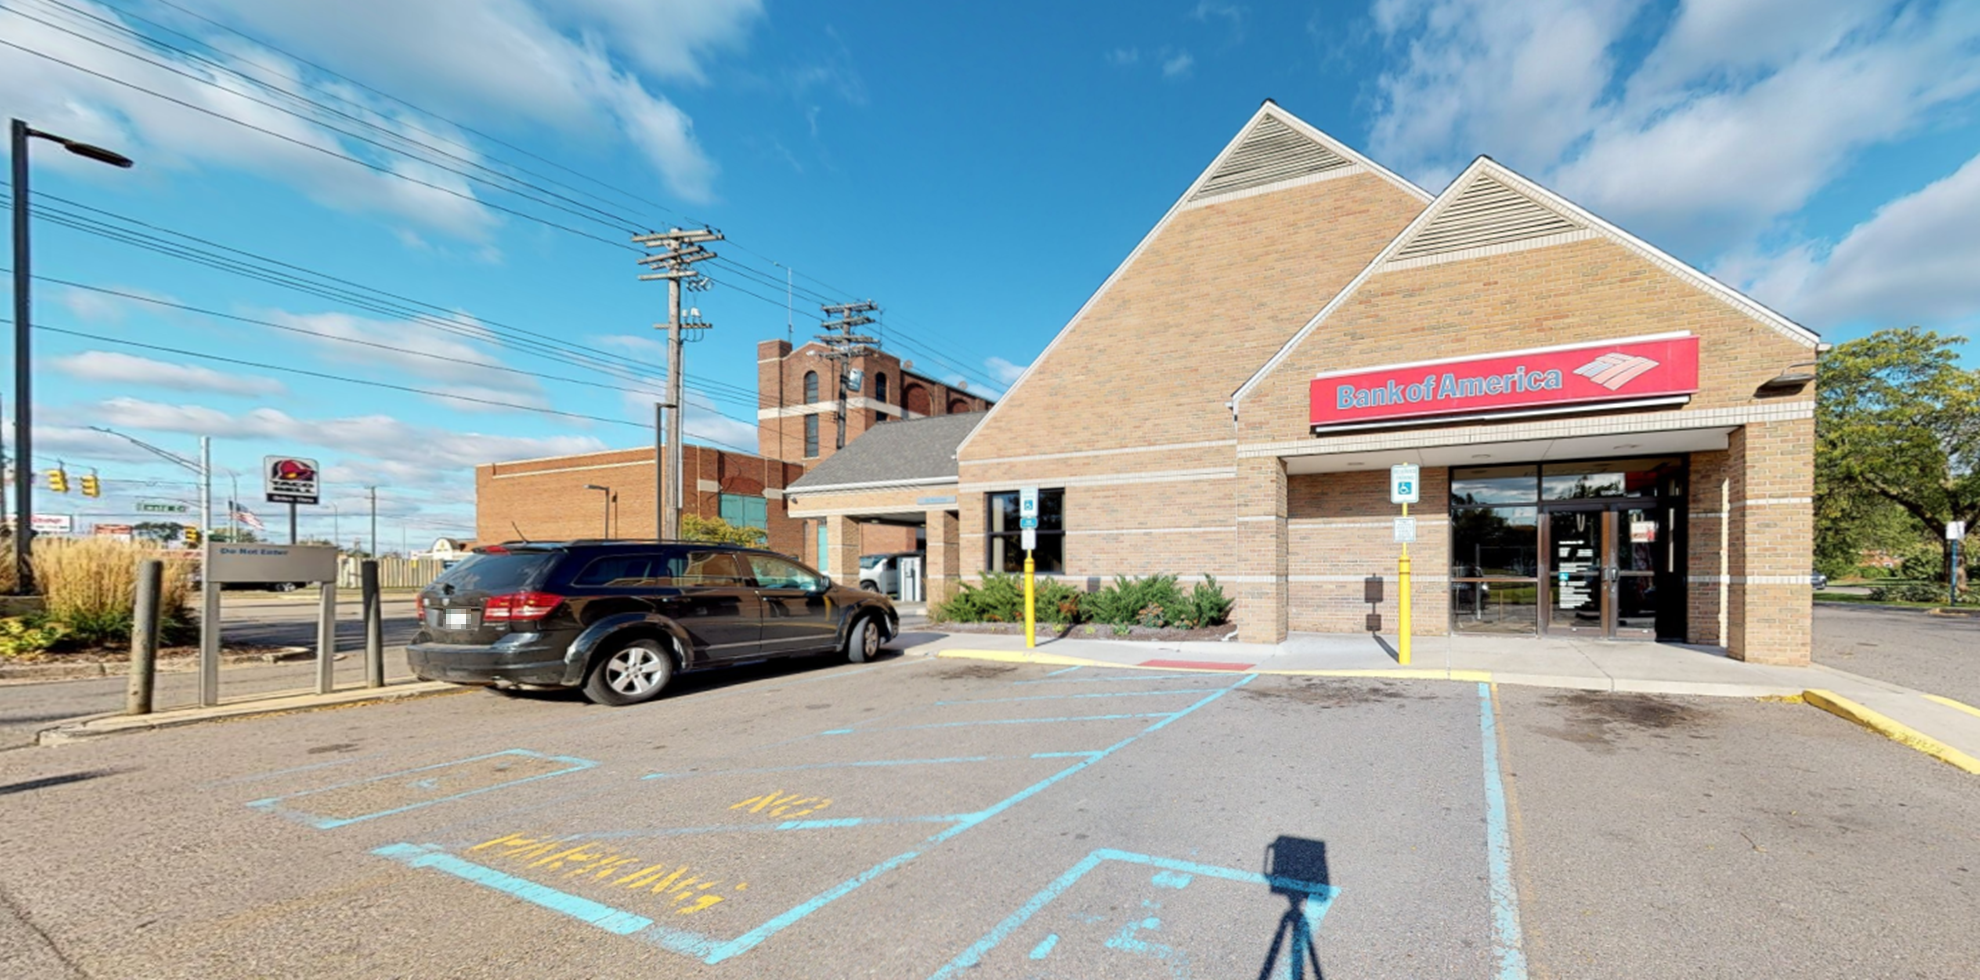 Bank of America financial center with drive-thru ATM | 13900 Livernois Ave, Detroit, MI 48238